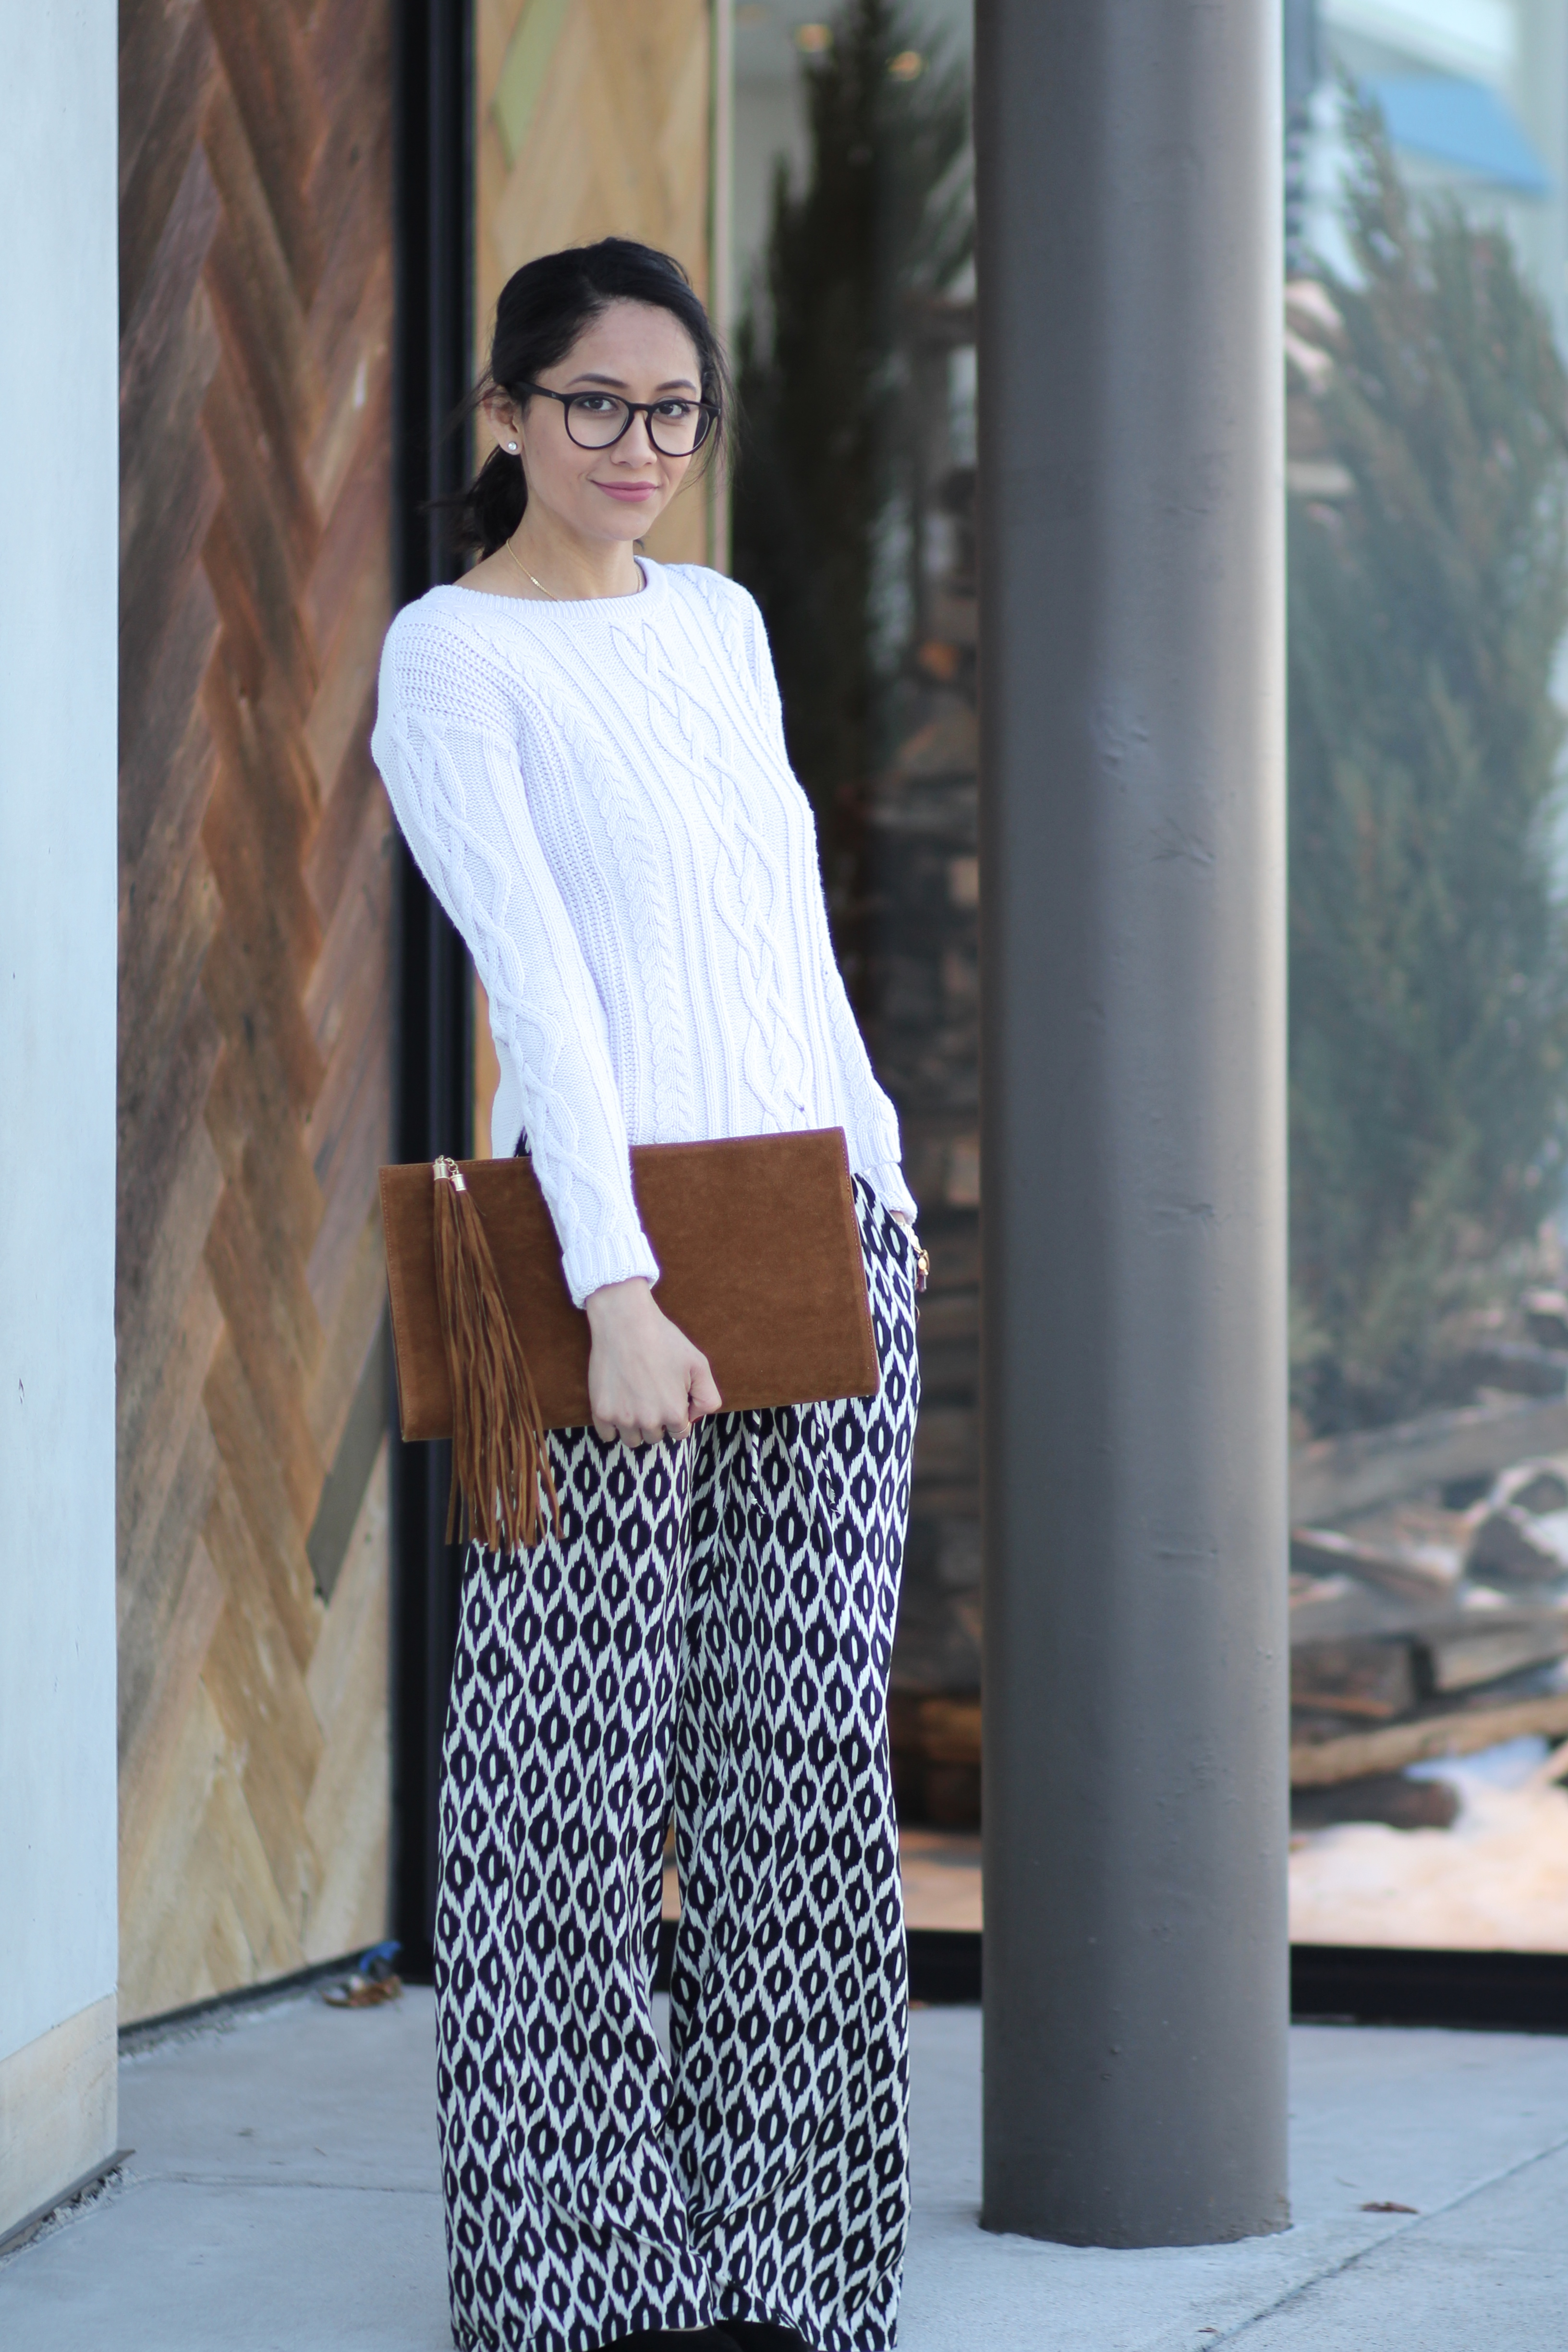 Boho Chic printed pants